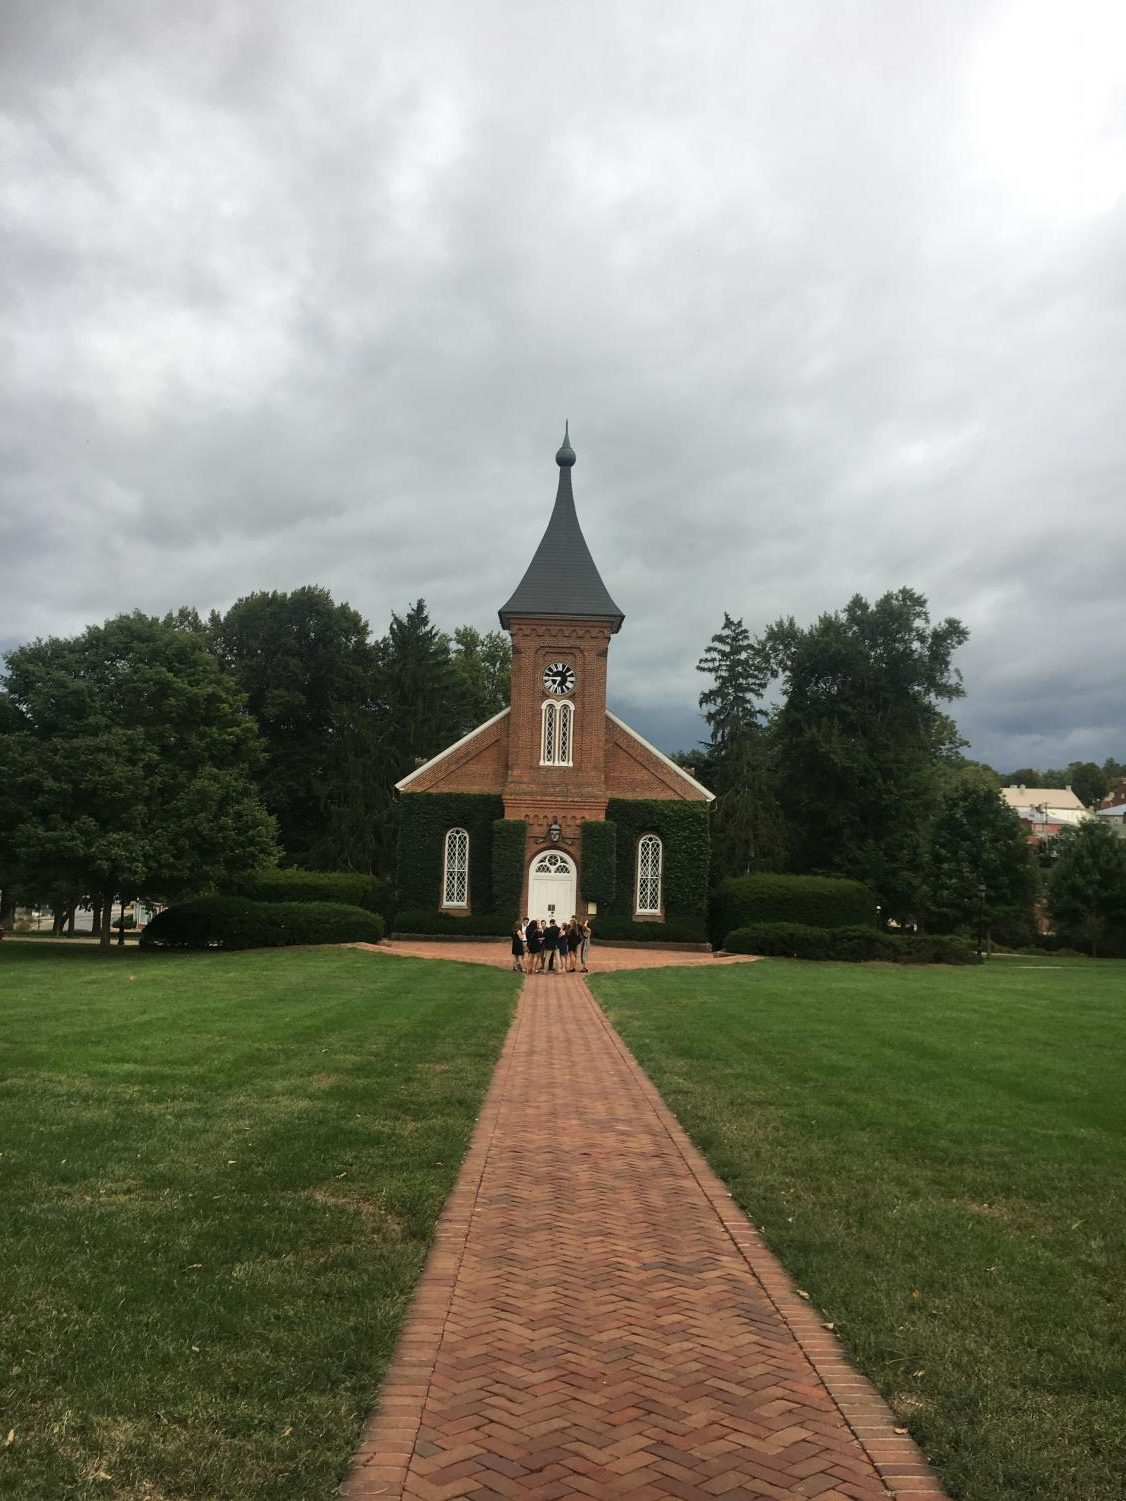 In 2018, the Commission on Institutional History and Community recommended that Lee Chapel be reconfigured or turned into a museum. Photo by Grace Mamon,